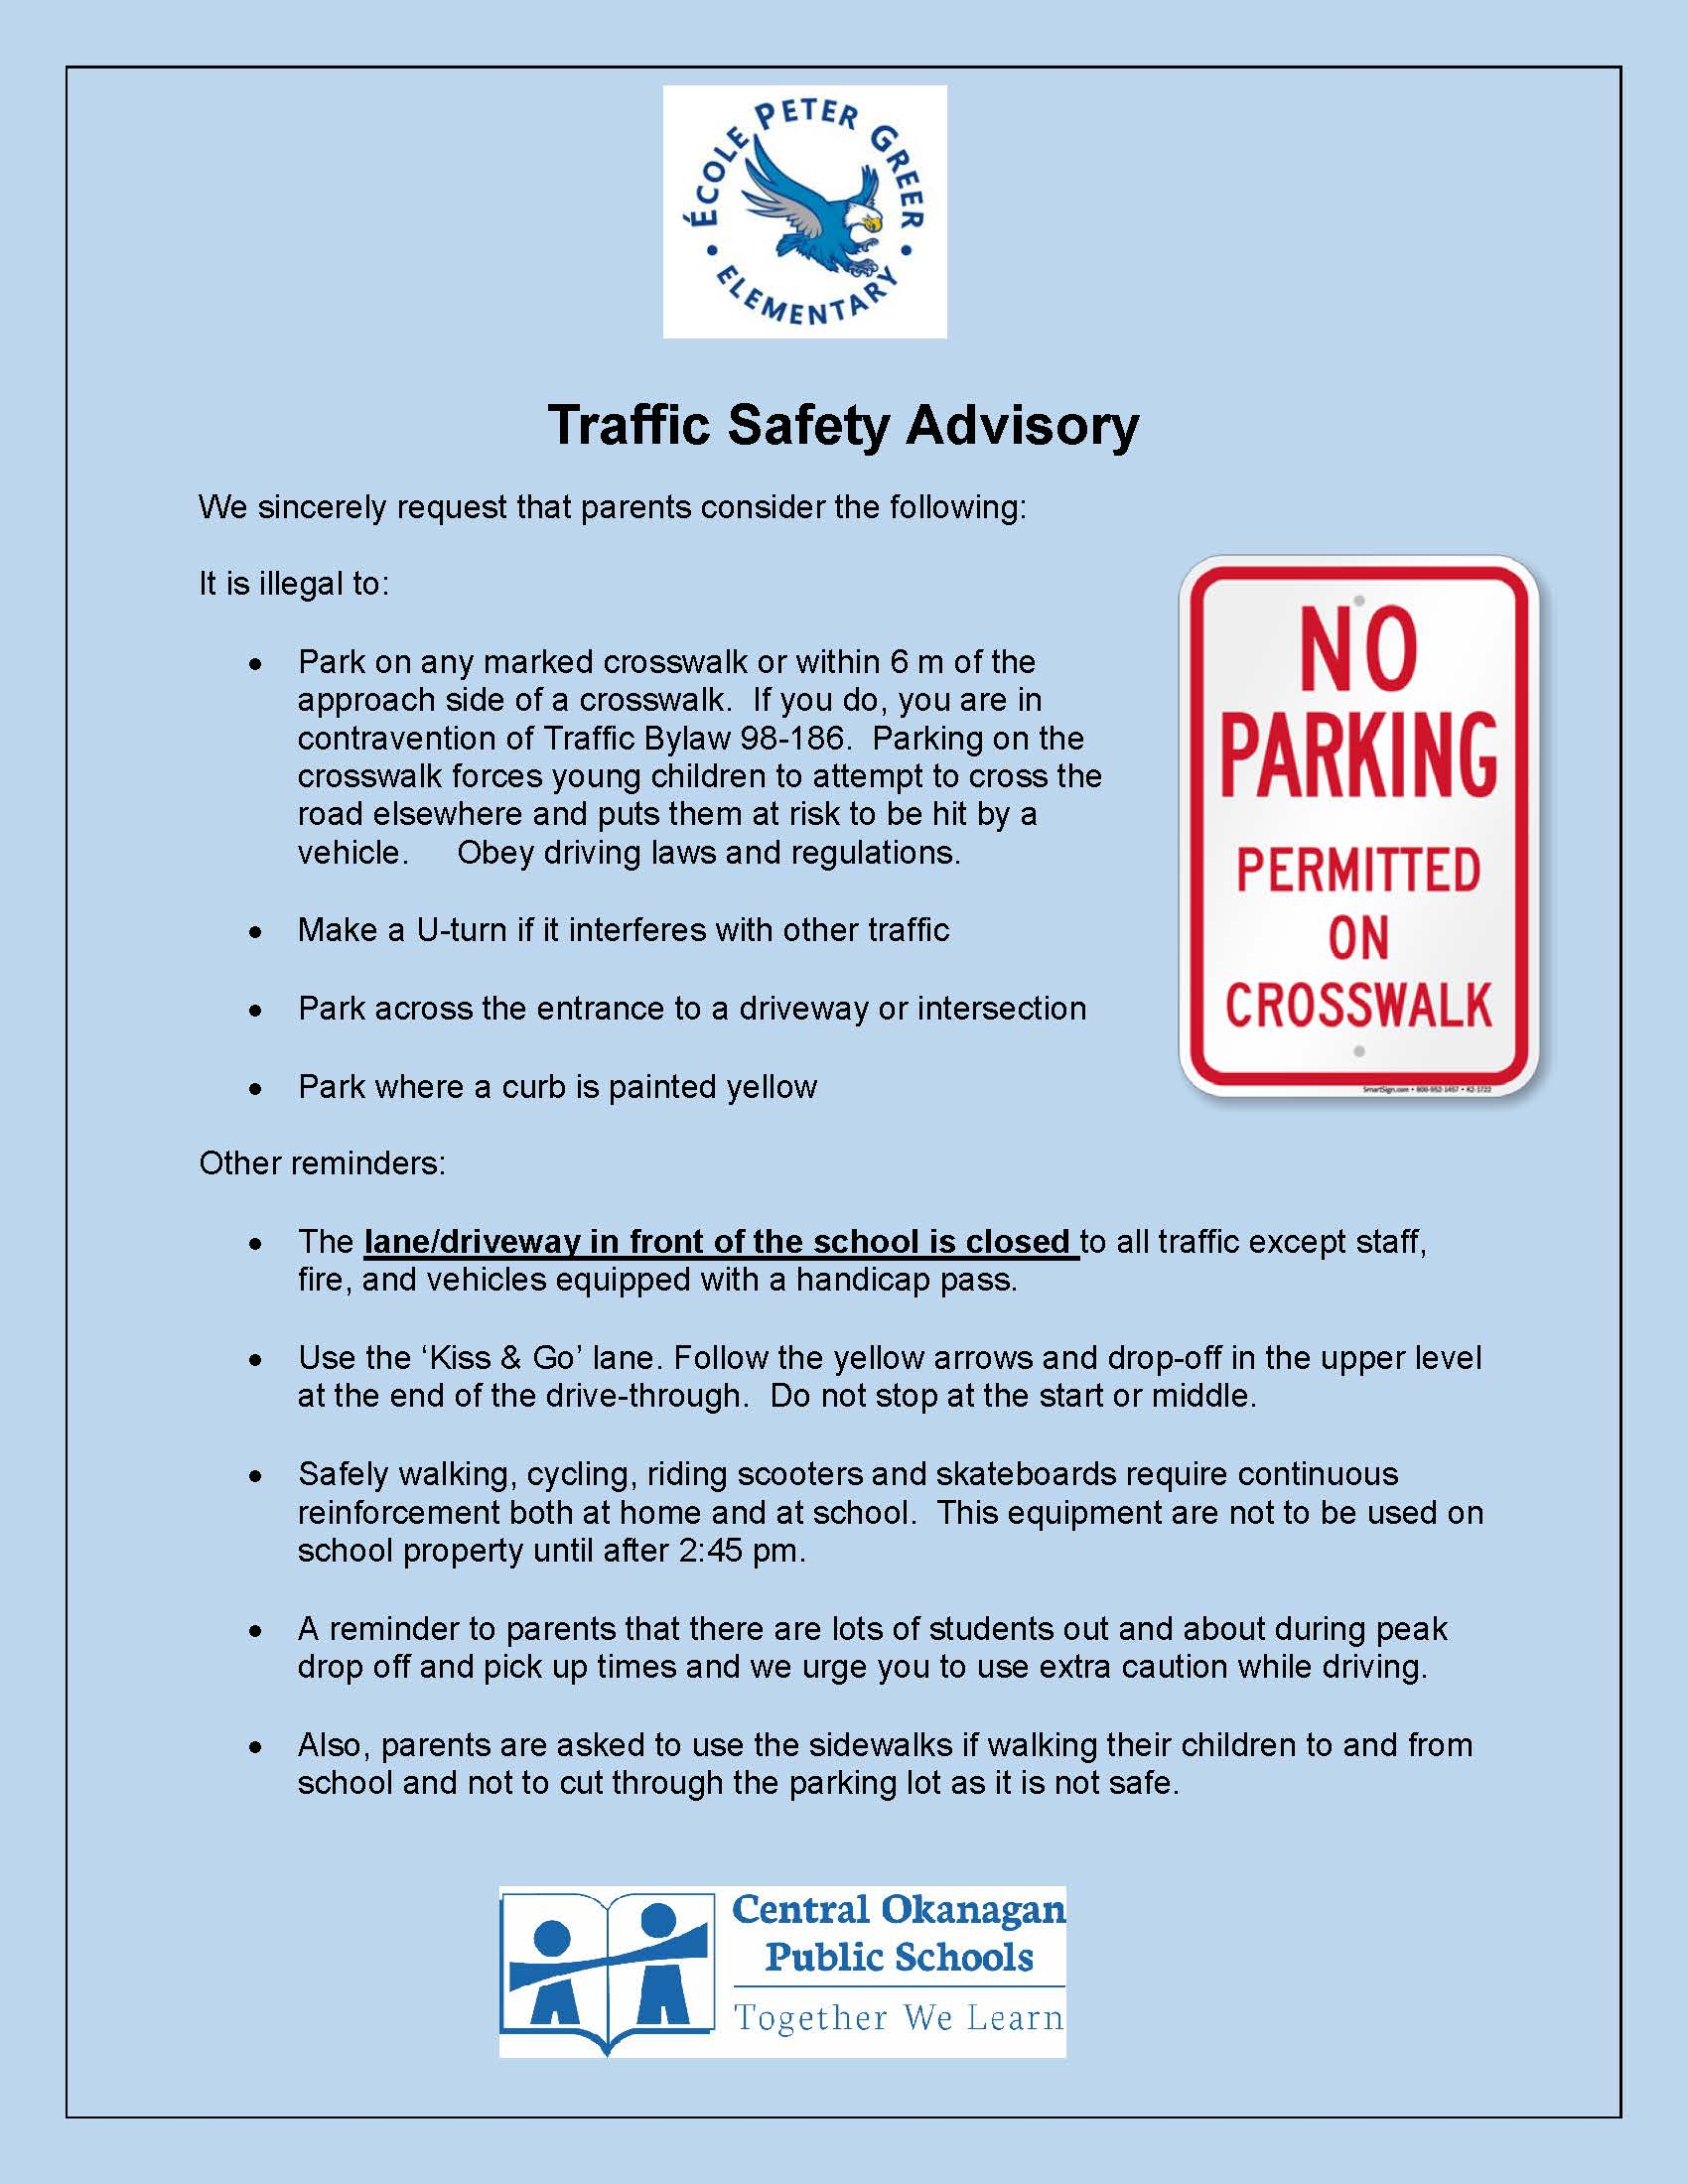 Traffic Safety Advisory.jpg